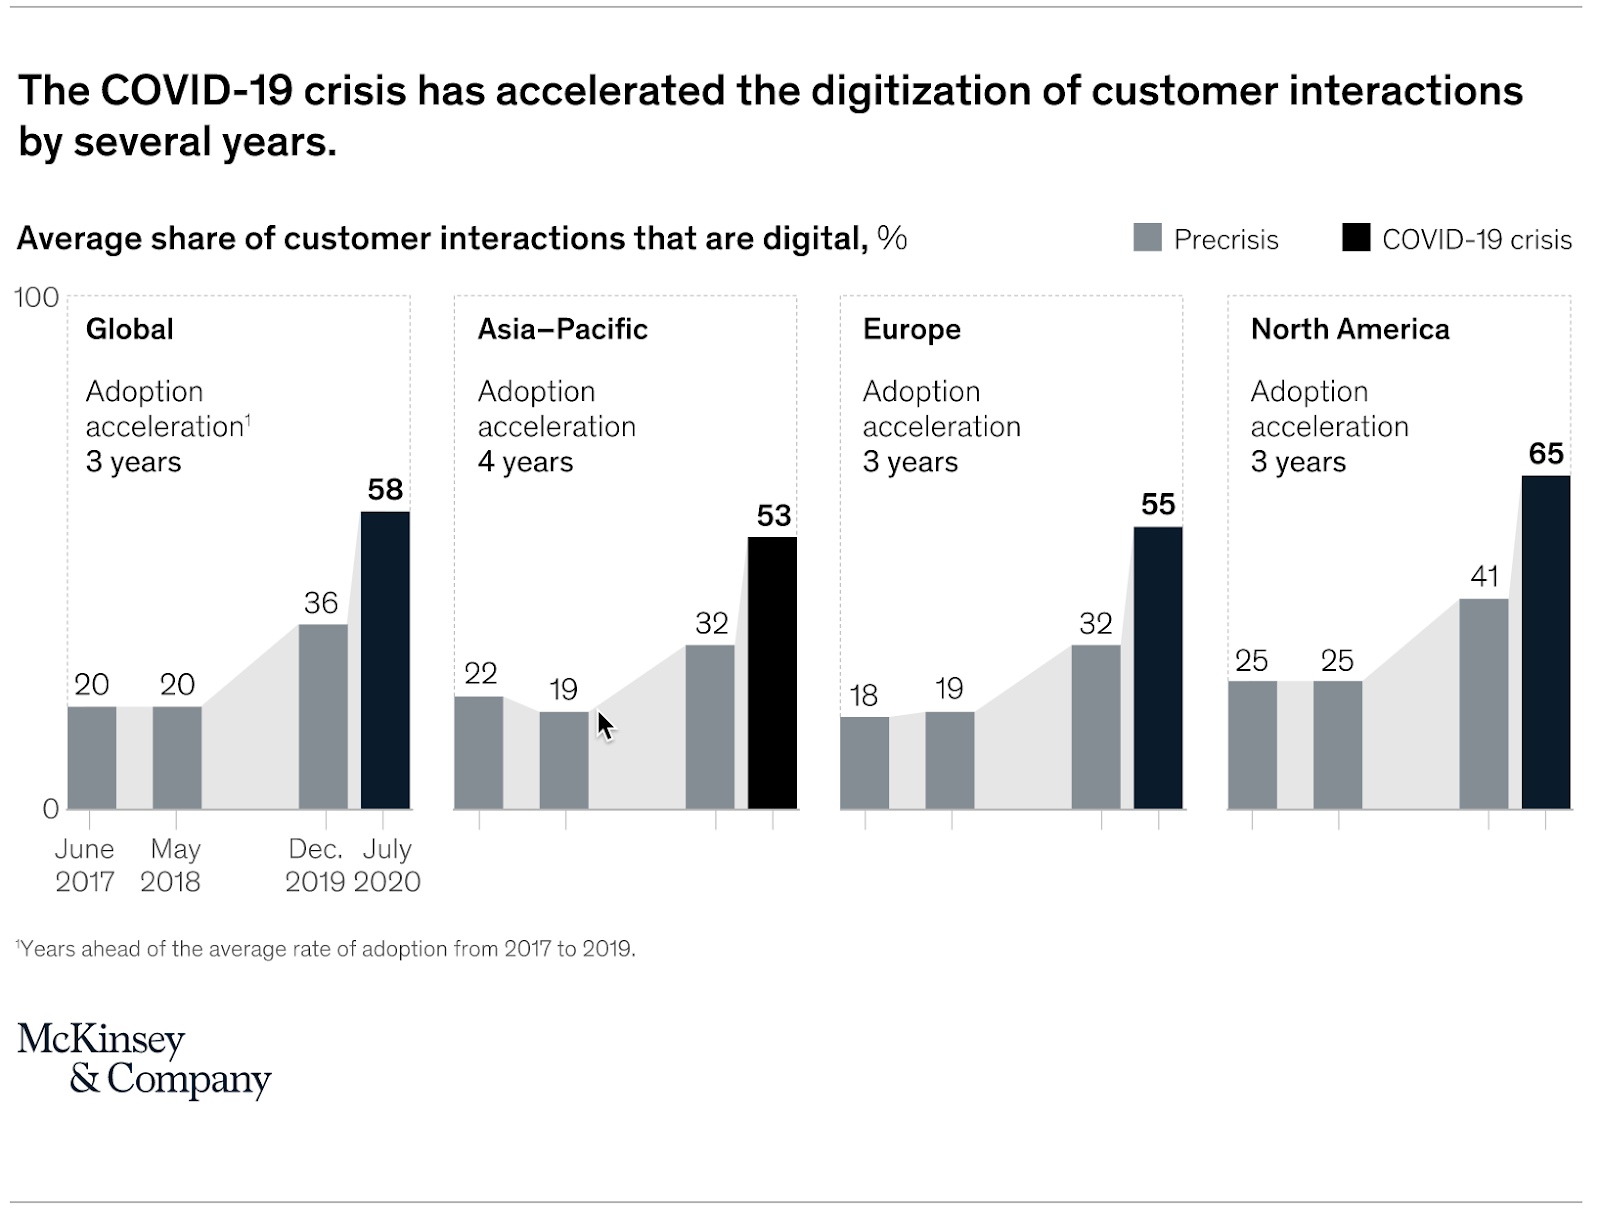 digitization of customer interactions graph by McKinsey and Company